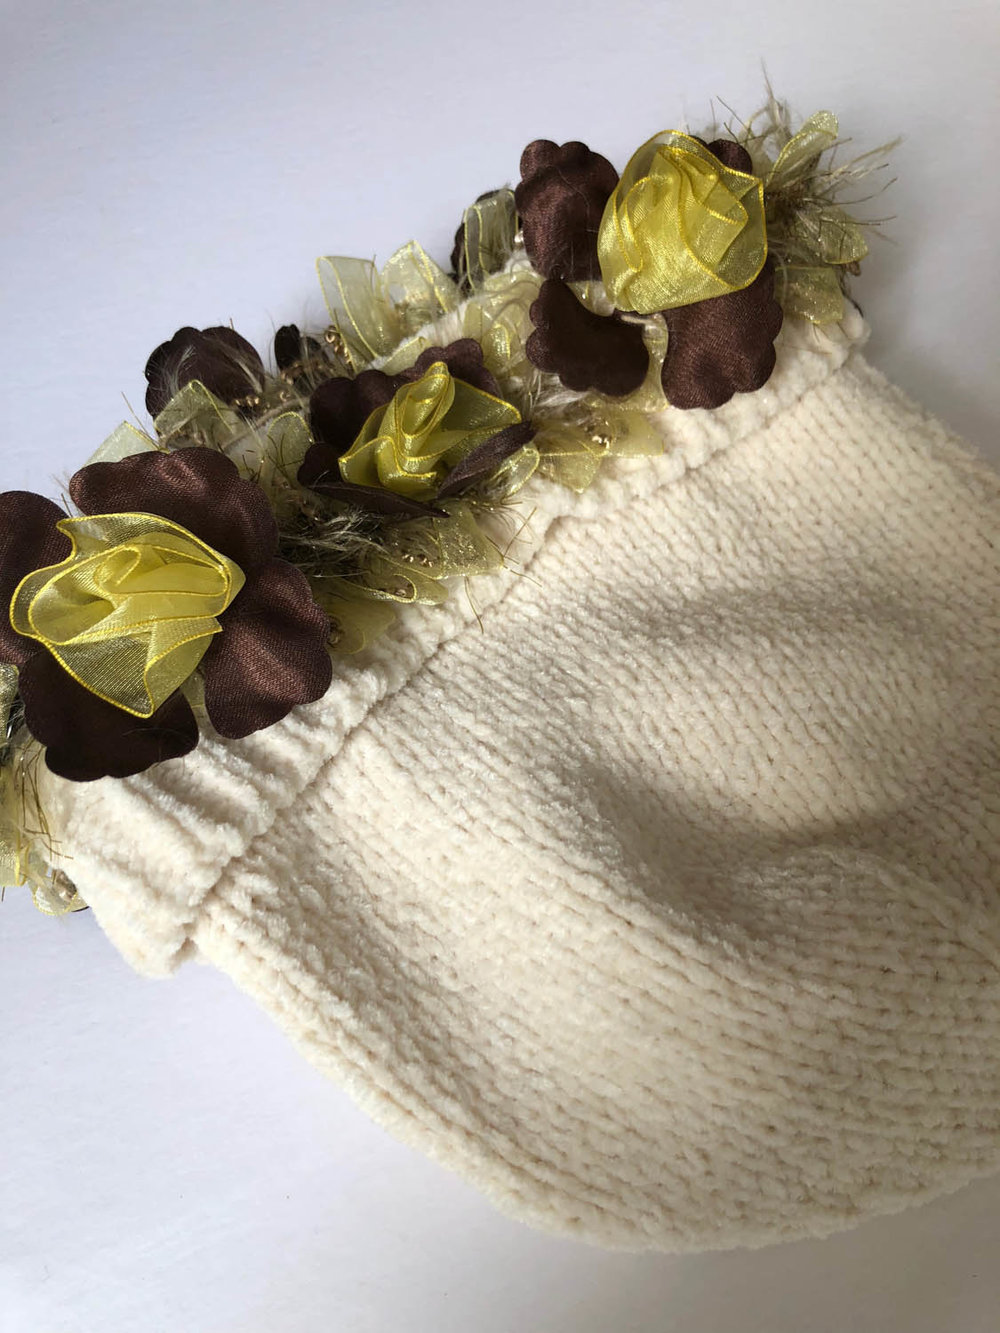 ribbon trim on an elastic band embellishes a white chenille winter hat